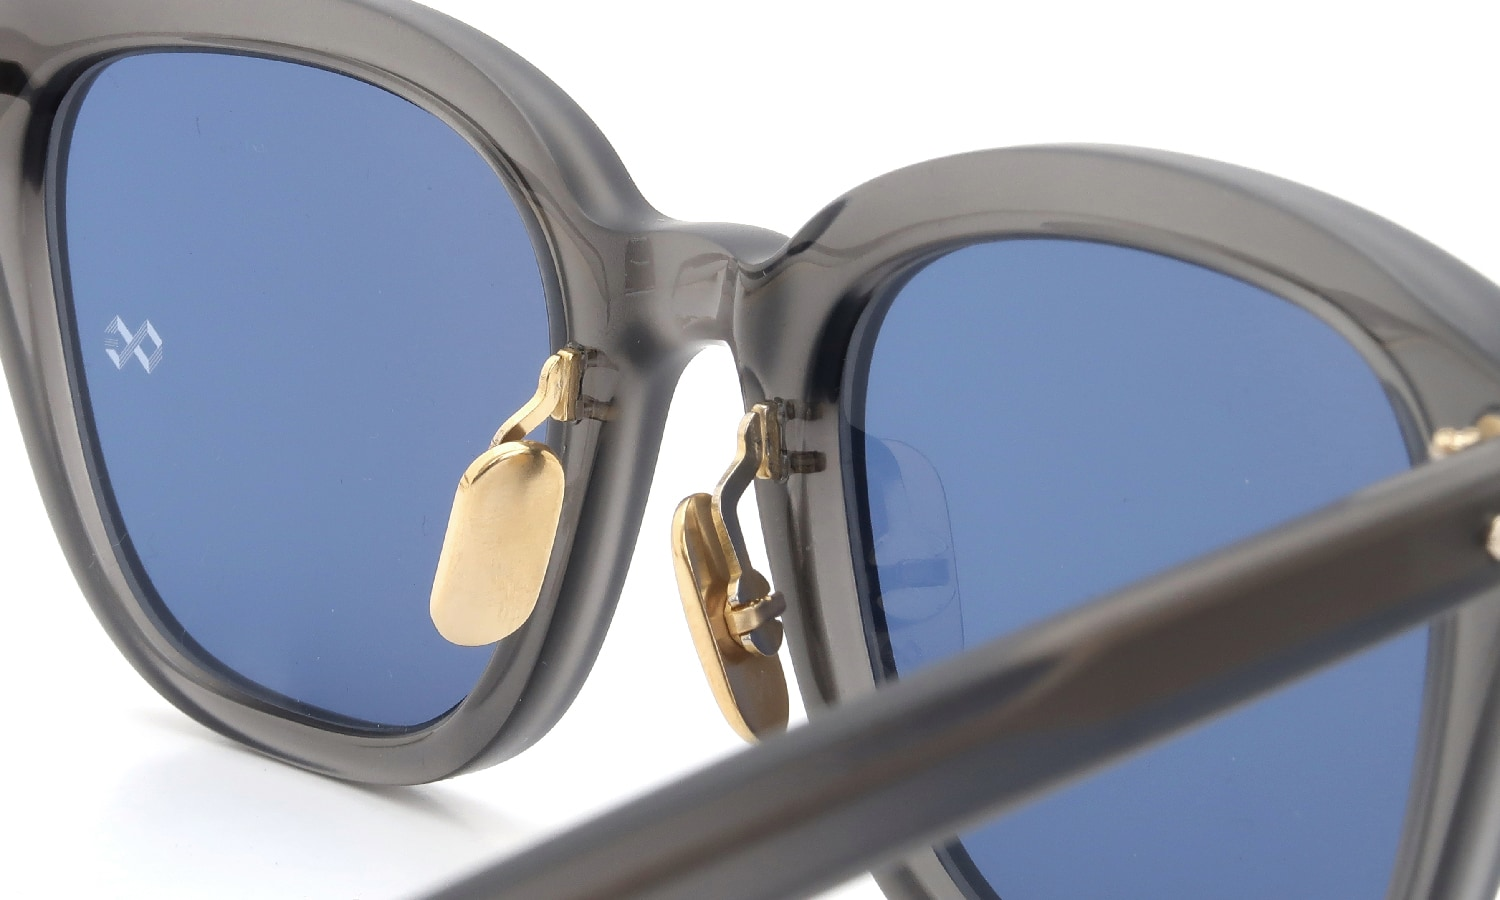 OG × OLIVER GOLDSMITH Re:MAY 50 SG リ:メイ 8